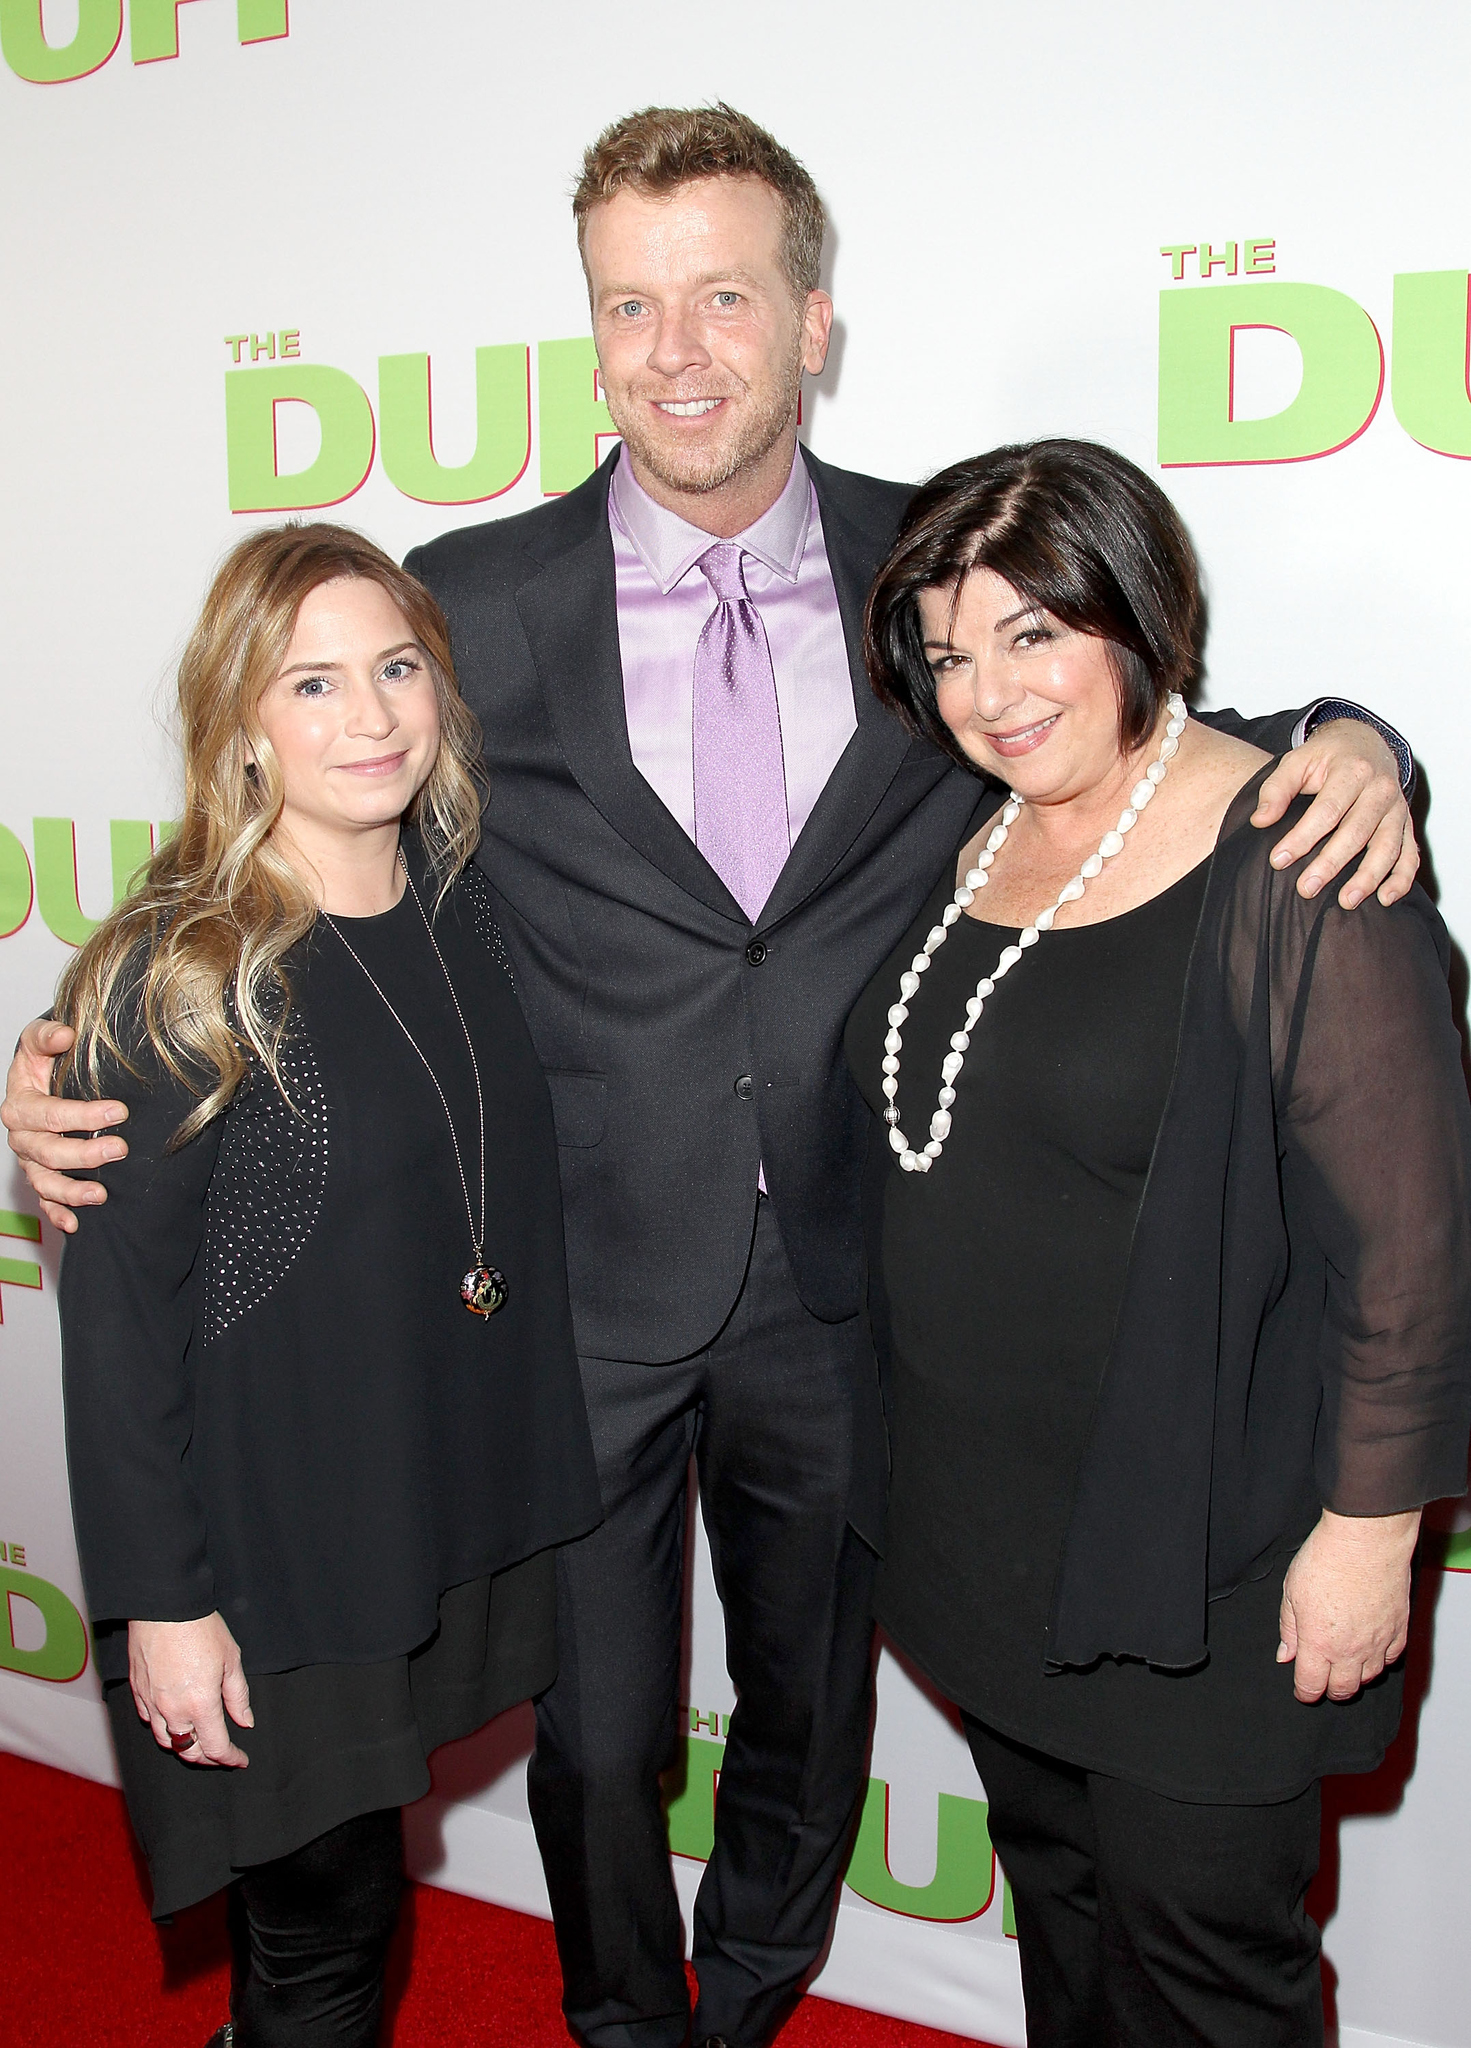 Susan Cartsonis, McG, and Mary Viola at an event for The Duff (2015)